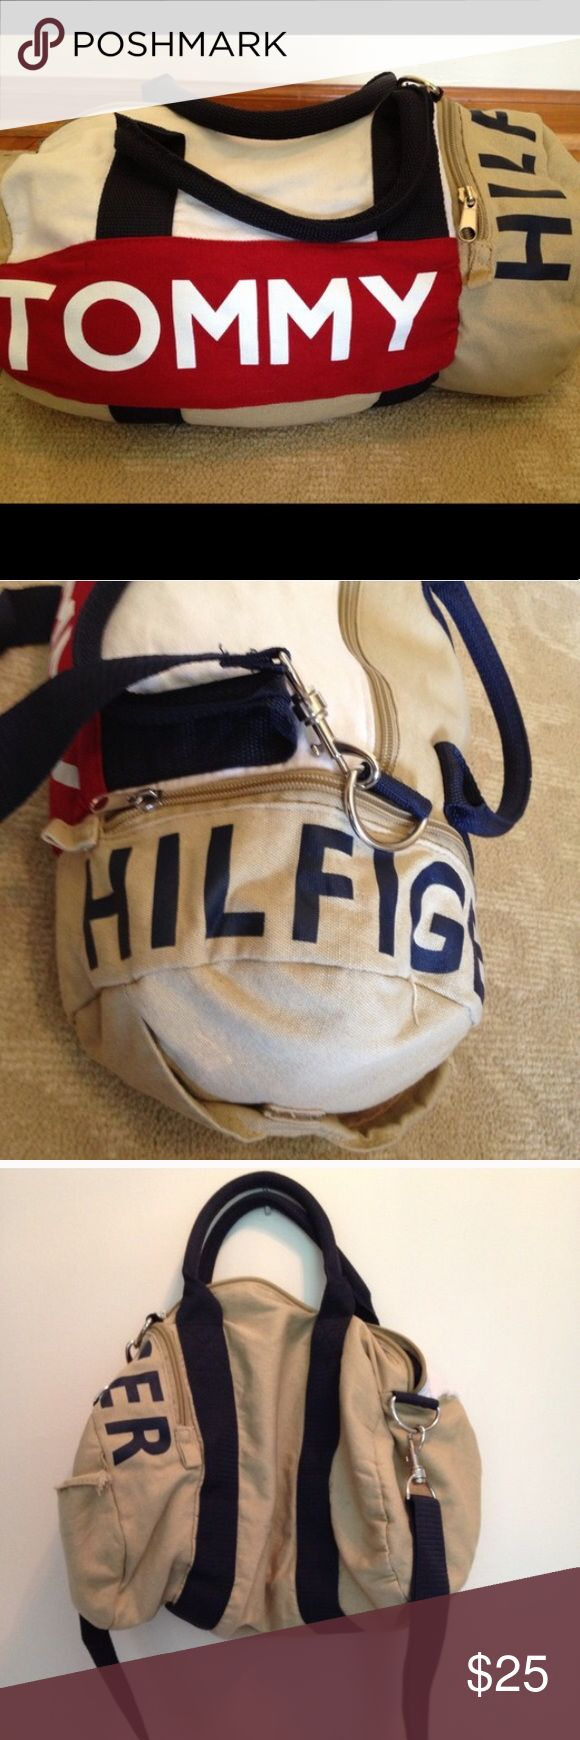 Tommy Hilfiger Duffle bag / gym bag Can be used as a small overnight bag or a gym bag Tommy Hilfiger Bags Travel Bags